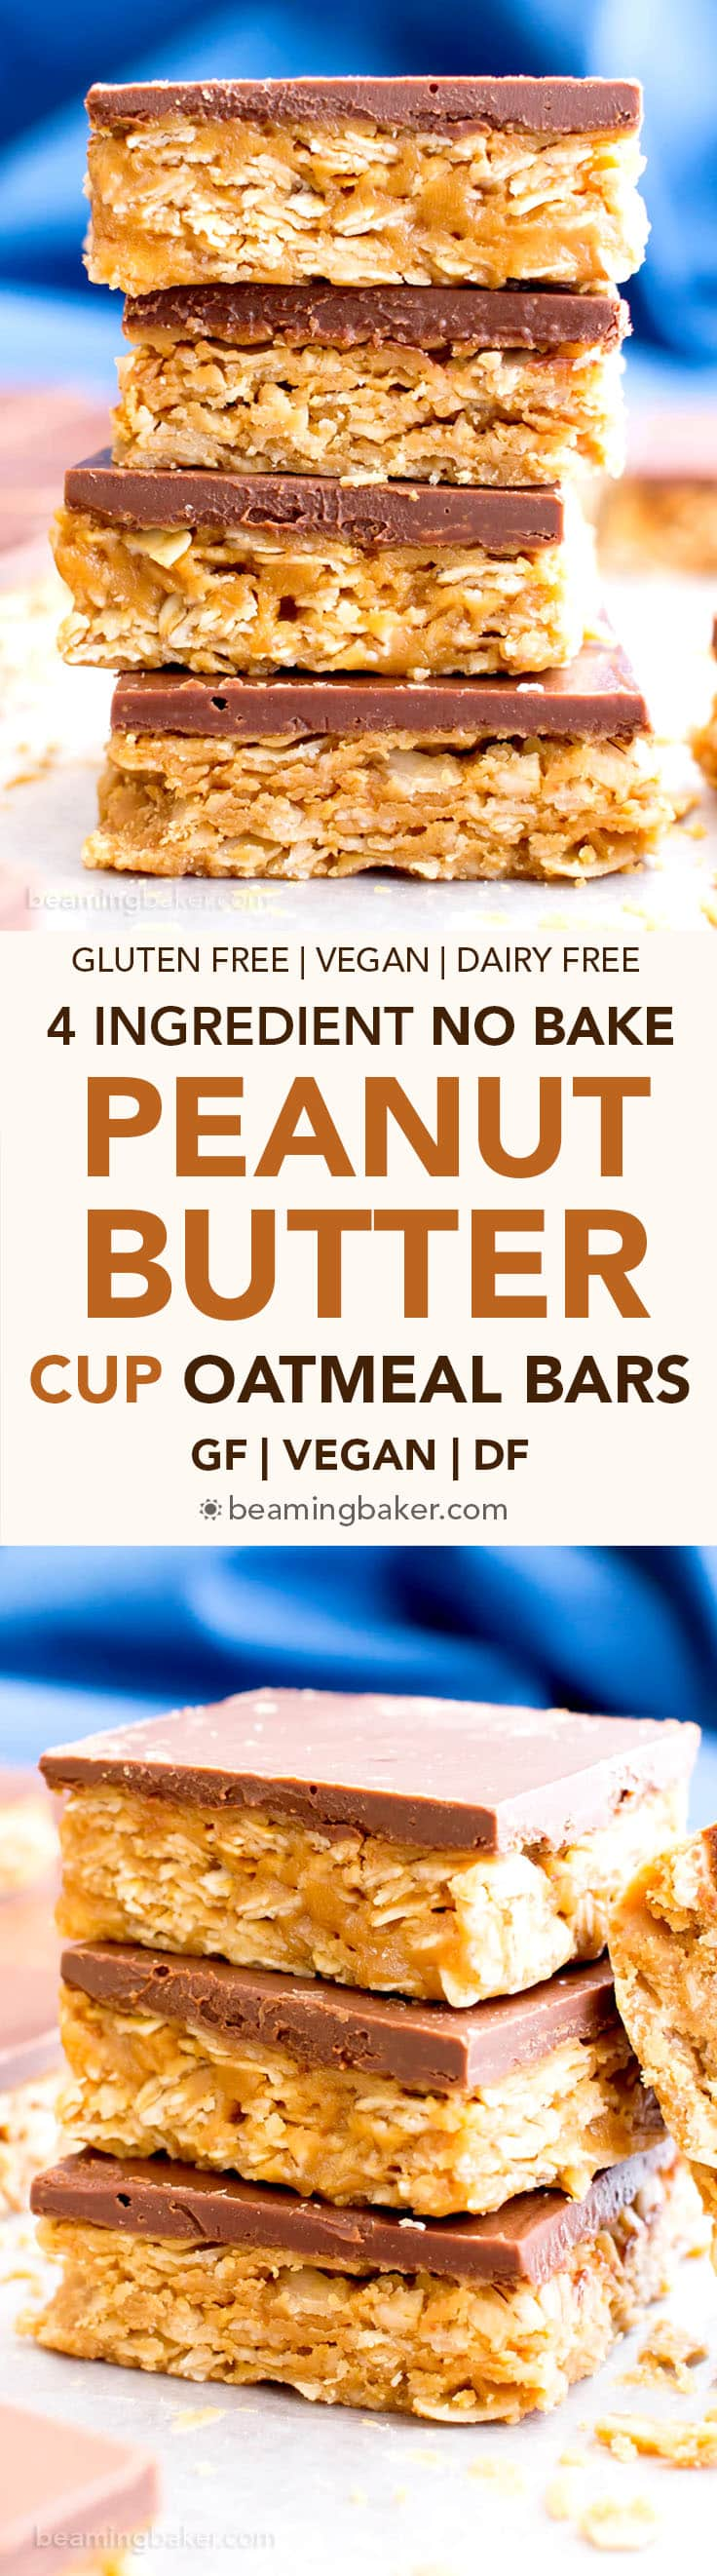 4 Ingredient No Bake Chocolate Peanut Butter Cup Granola Bars (GF, V): an easy, protein-rich recipe for decadent PB granola bars covered in chocolate, made with whole ingredients. #Vegan #ProteinPacked #GlutenFree #DairyFree #WholeGrain   BeamingBaker.com